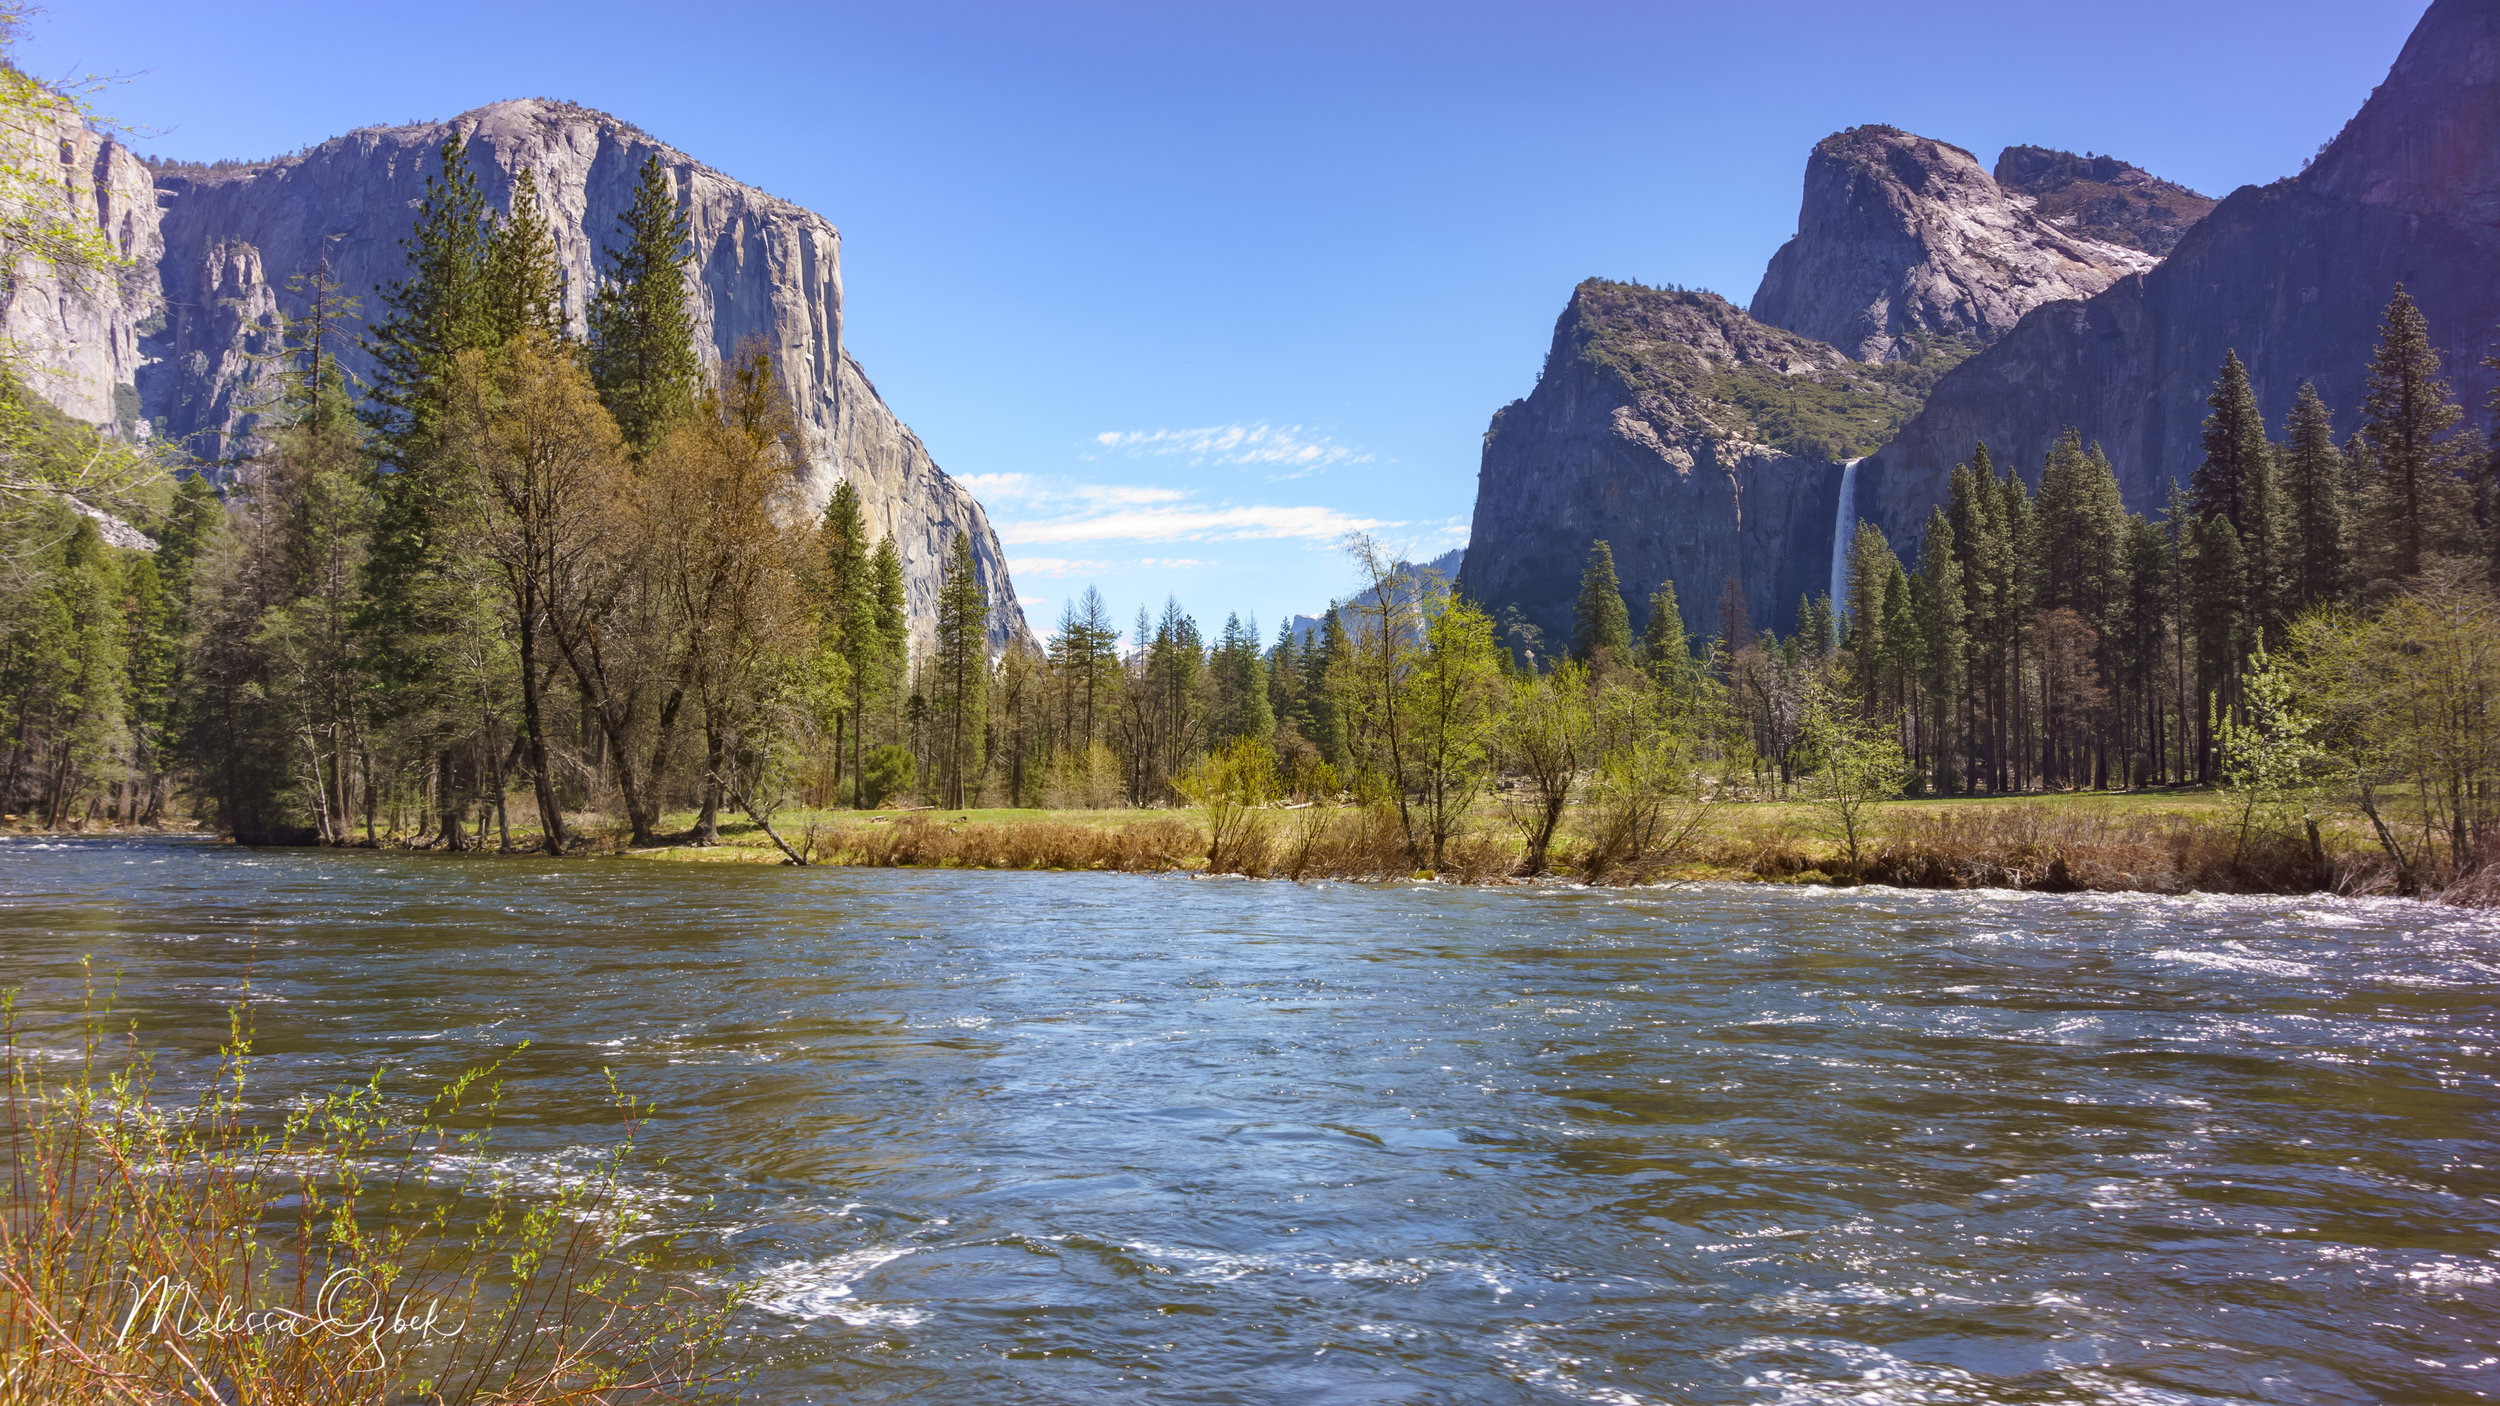 Valley View and the Merced River.